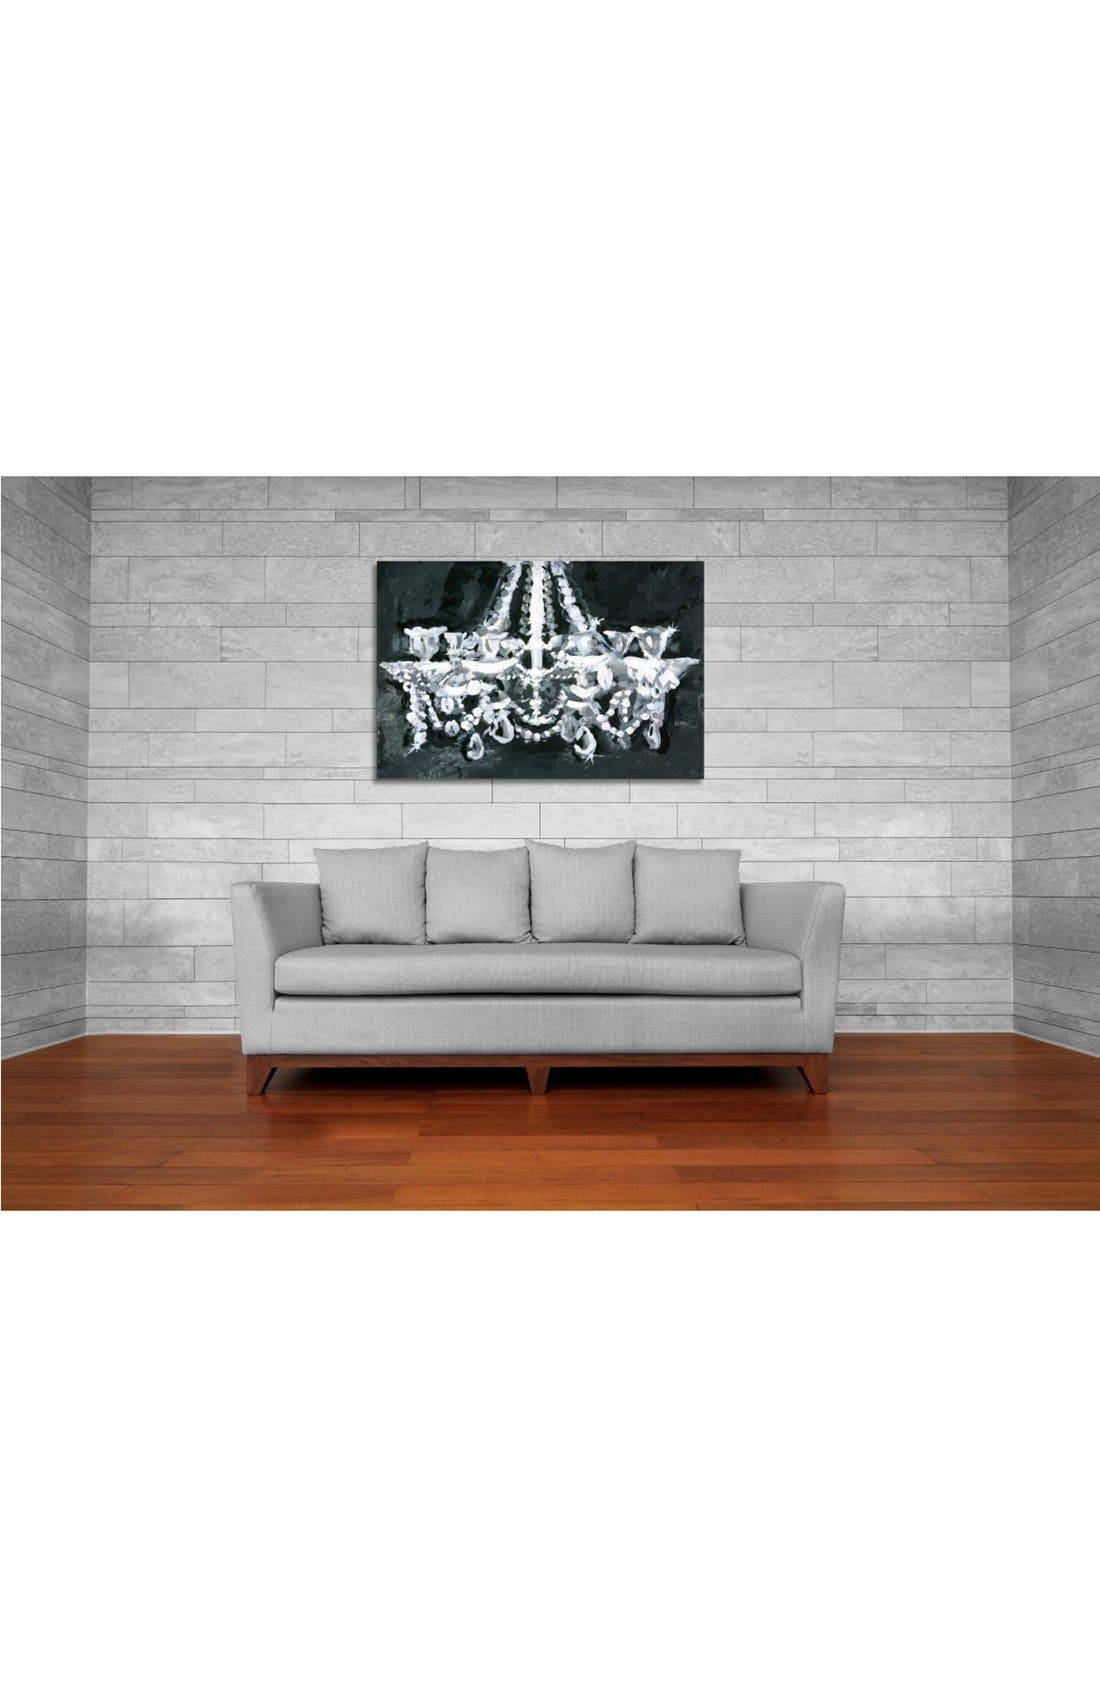 'Candelabra' Wall Art,                             Alternate thumbnail 2, color,                             BLACK MULTI